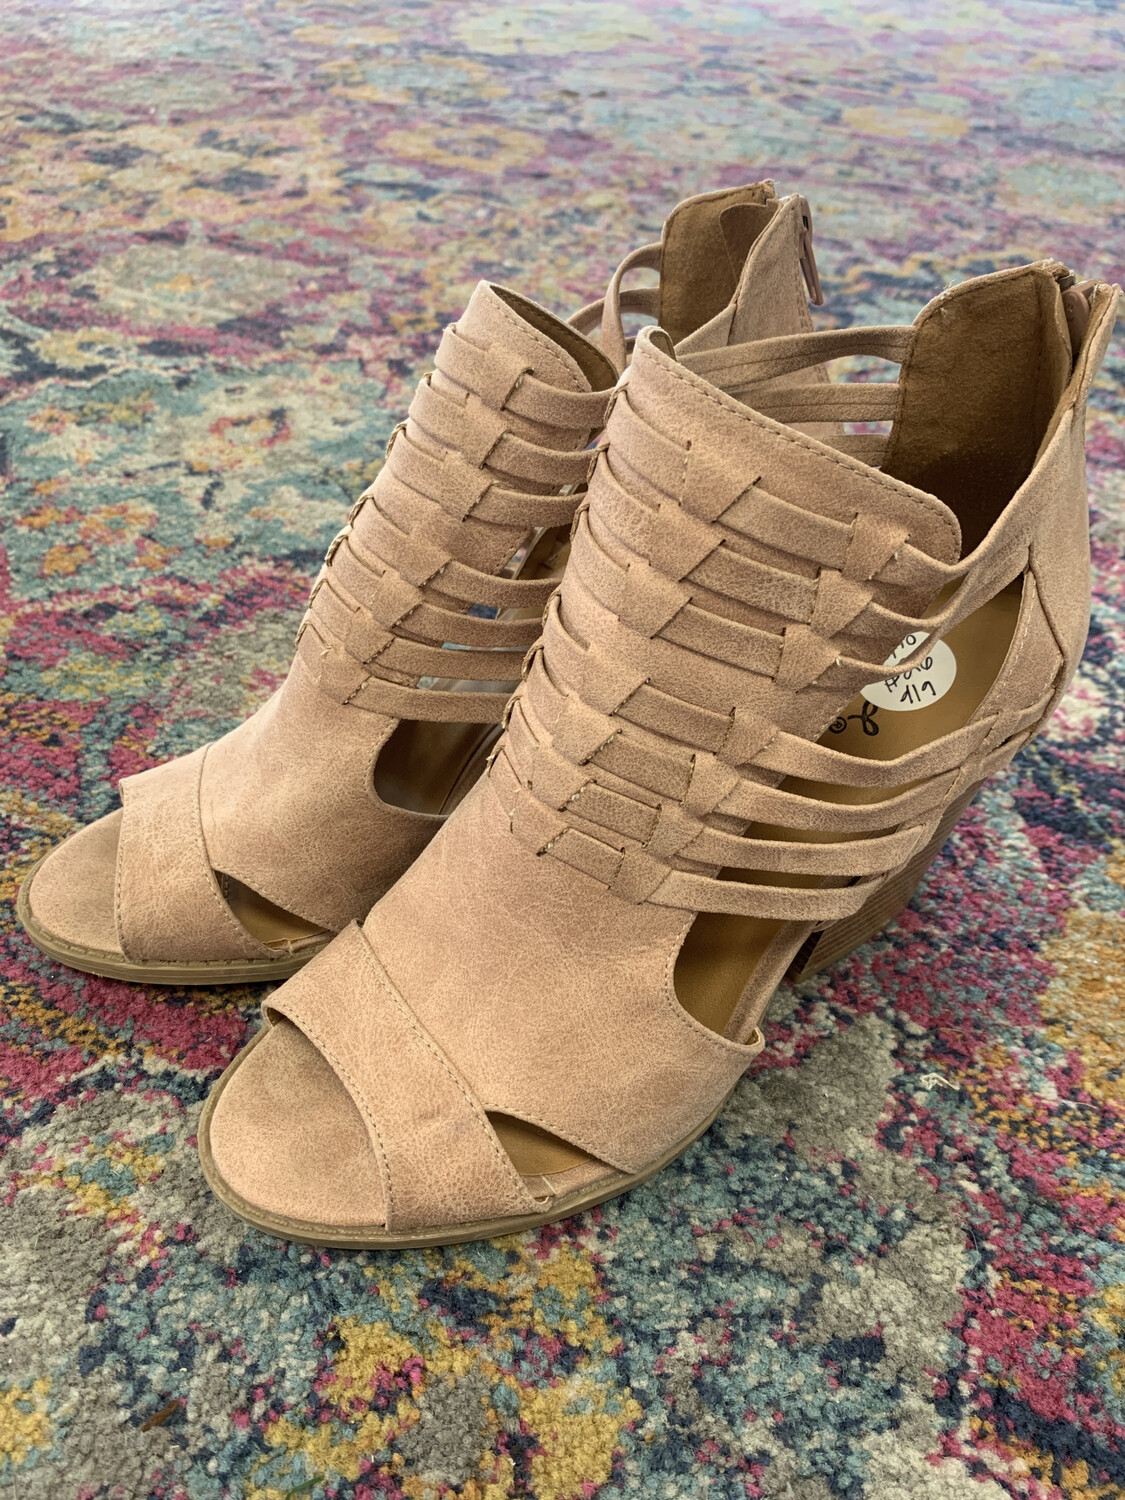 Qupid Blush Peep Toe Booties - Size 9